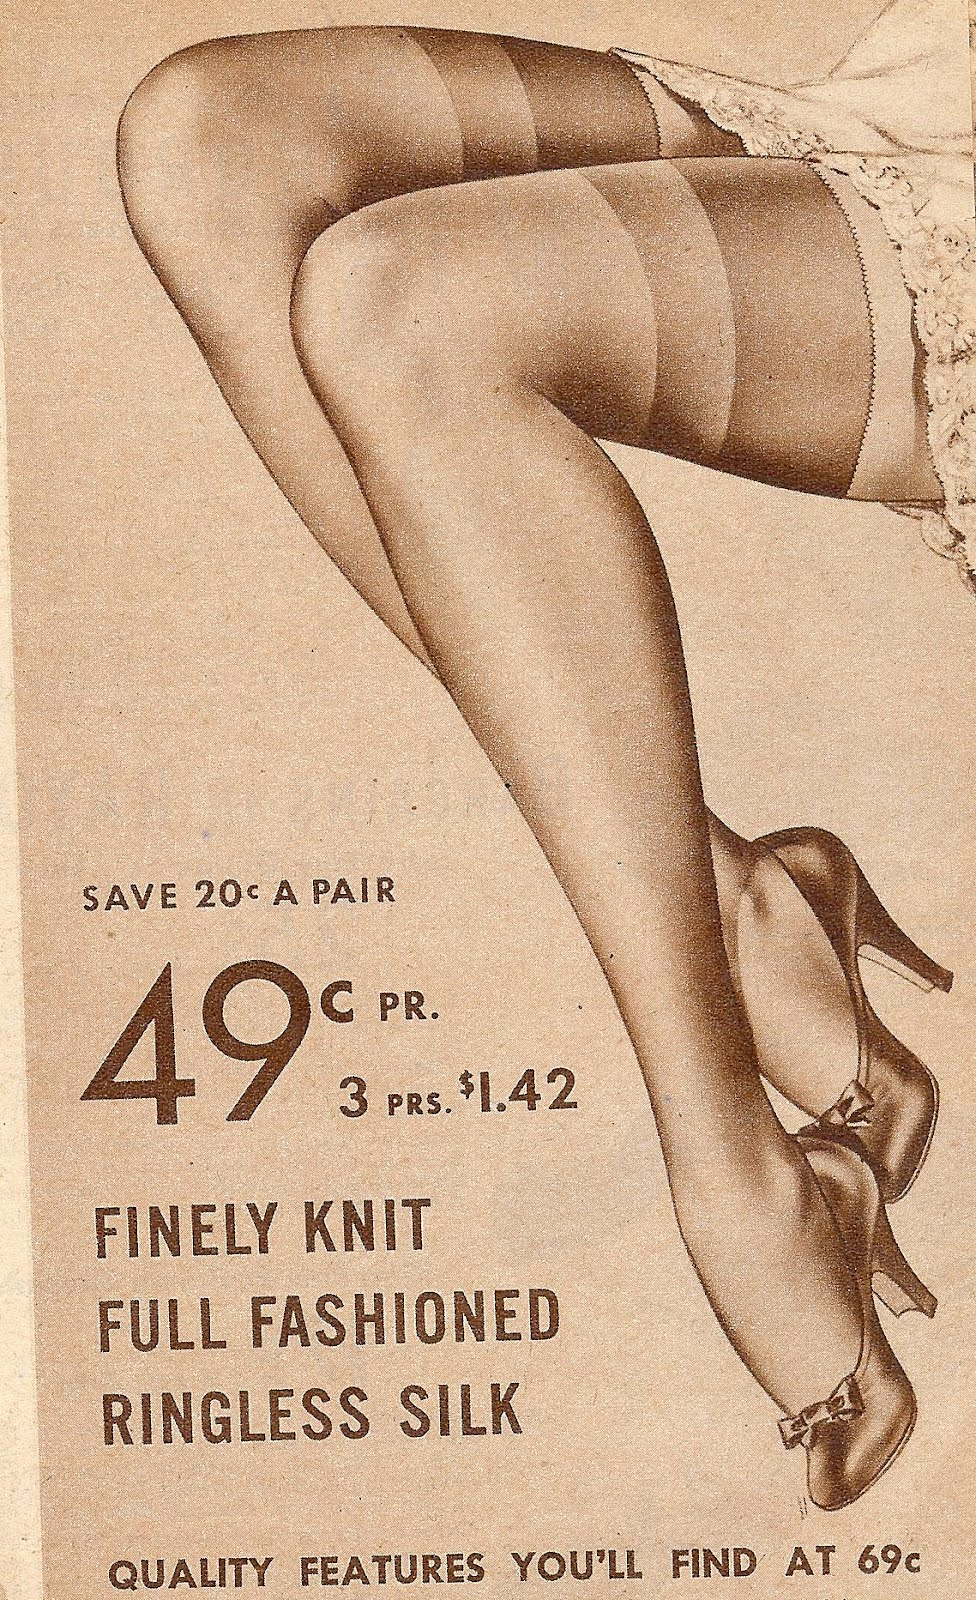 circa 1940's stocking legs. Did you realize that just forty years